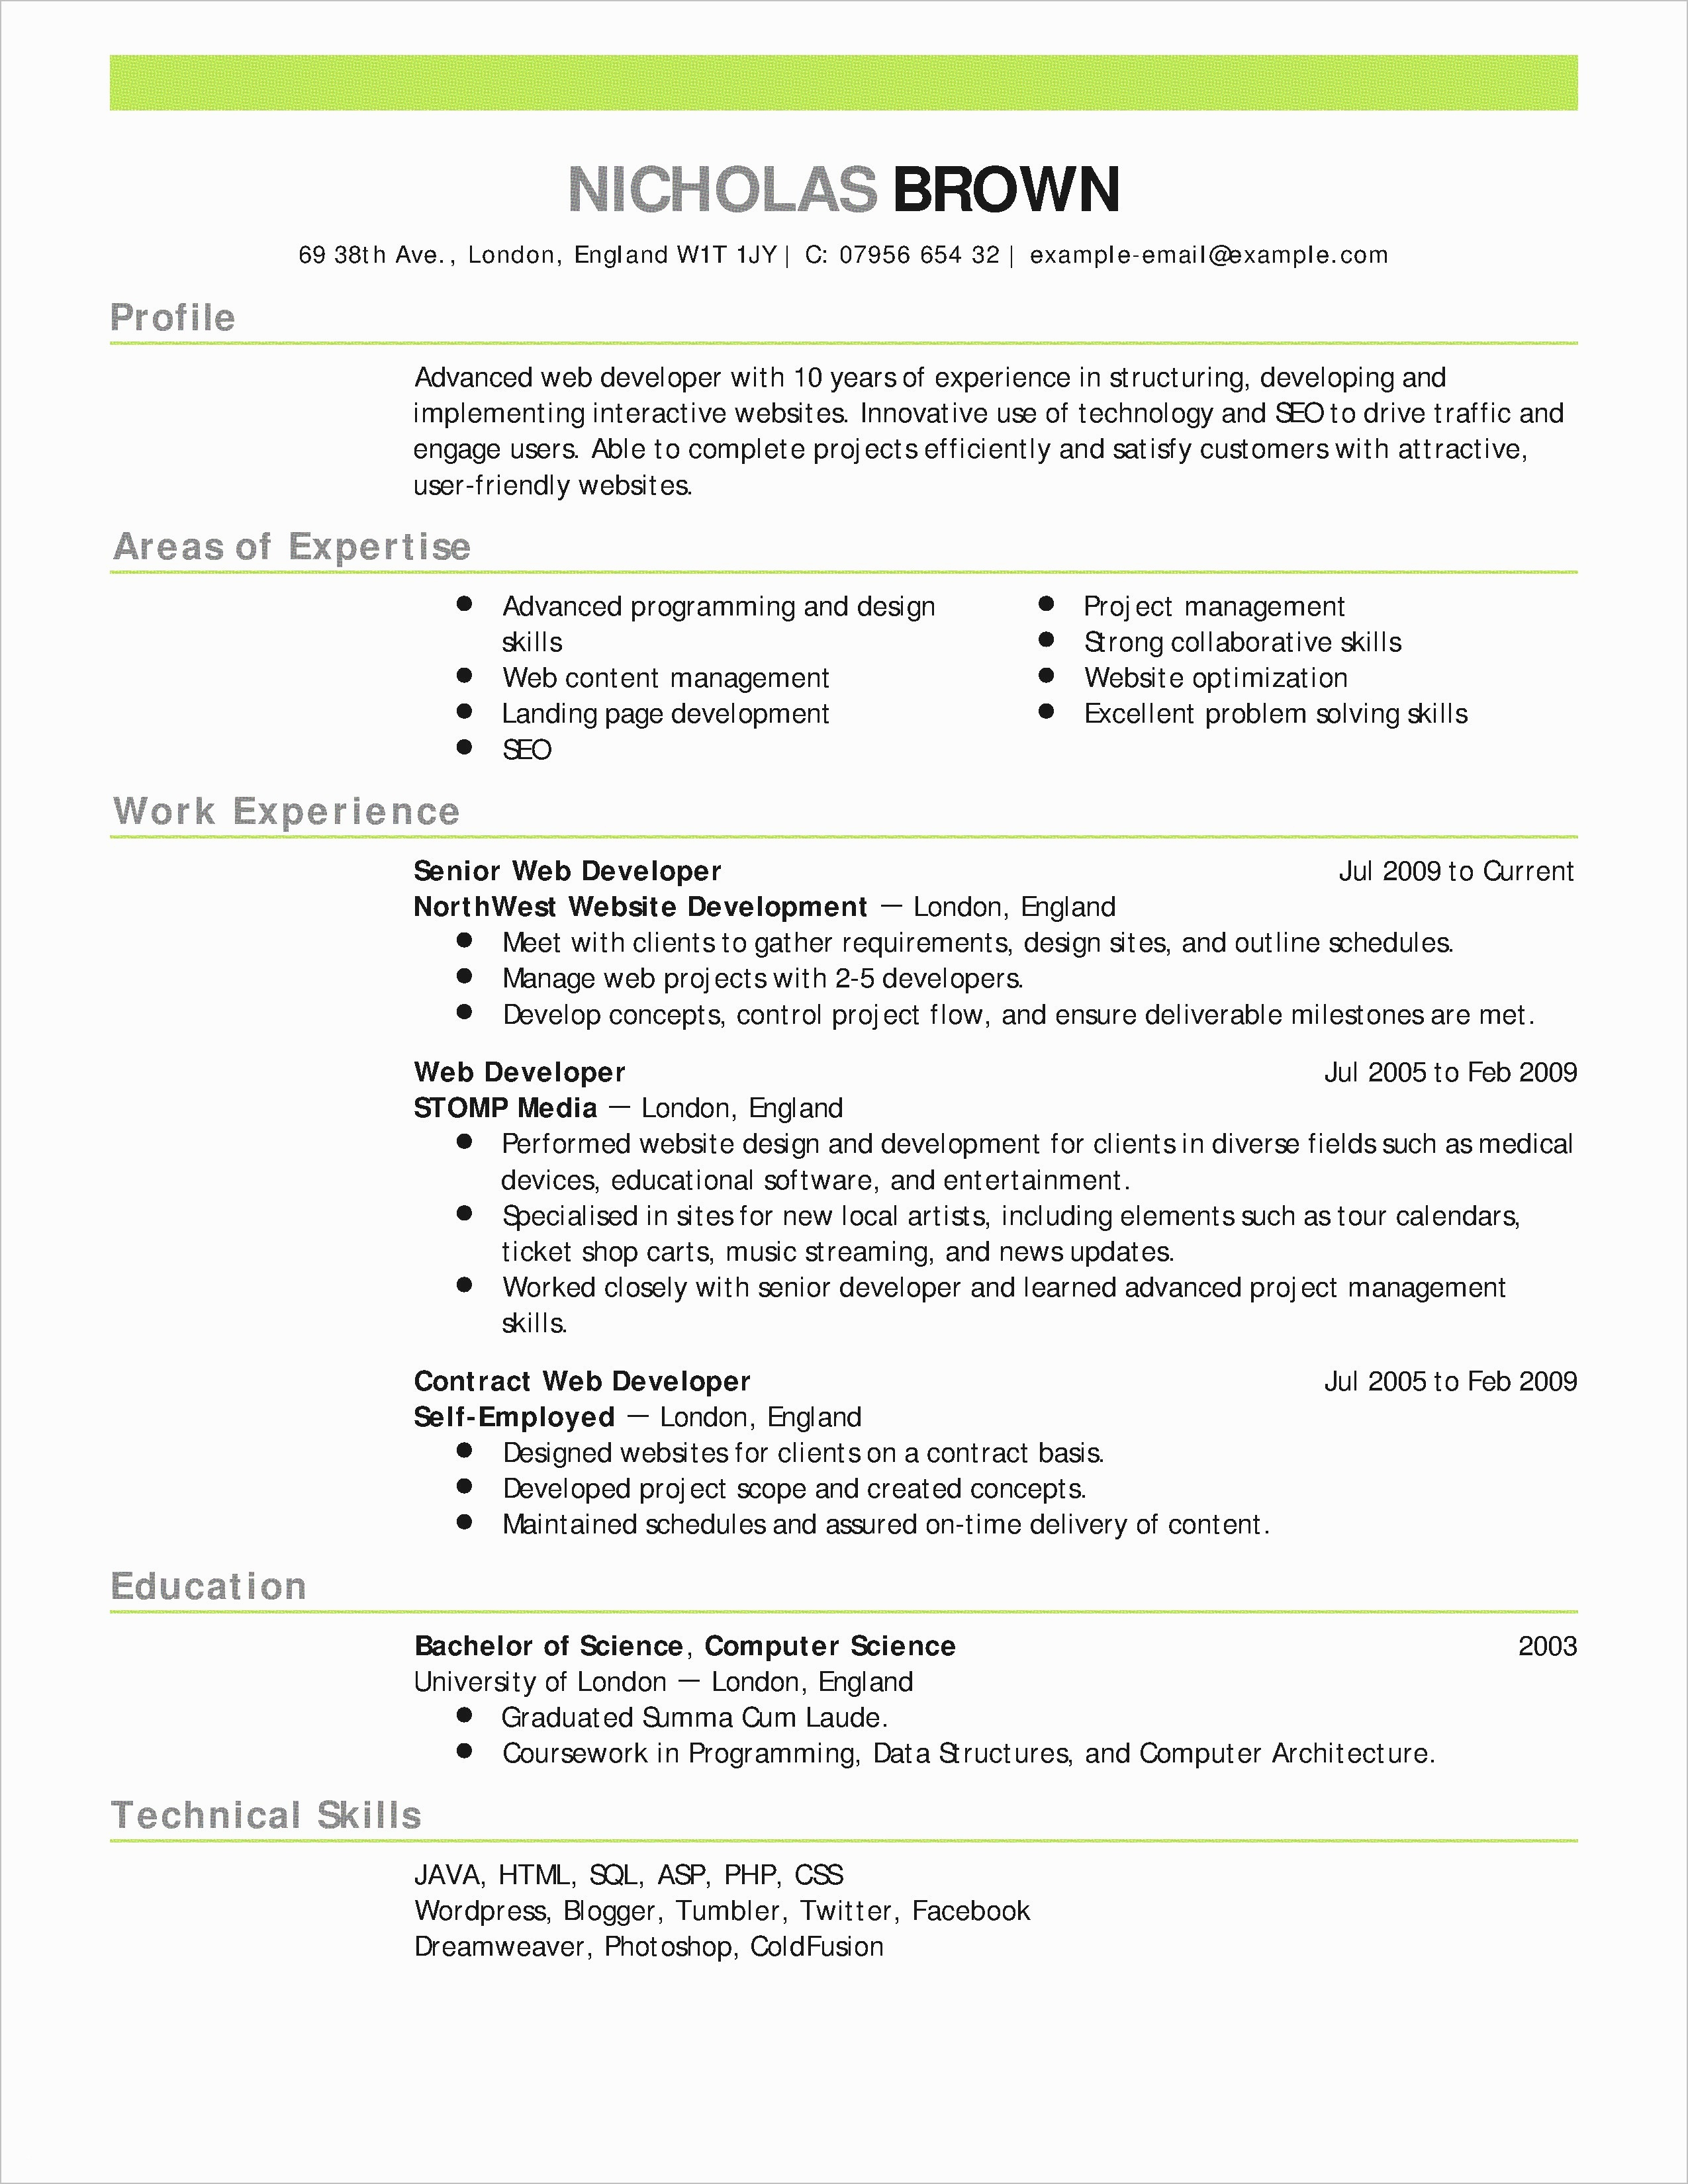 Collaborate Synonym for Resume - Resume for A Cook Unique Gaps In Resume Fresh Blank Resume format